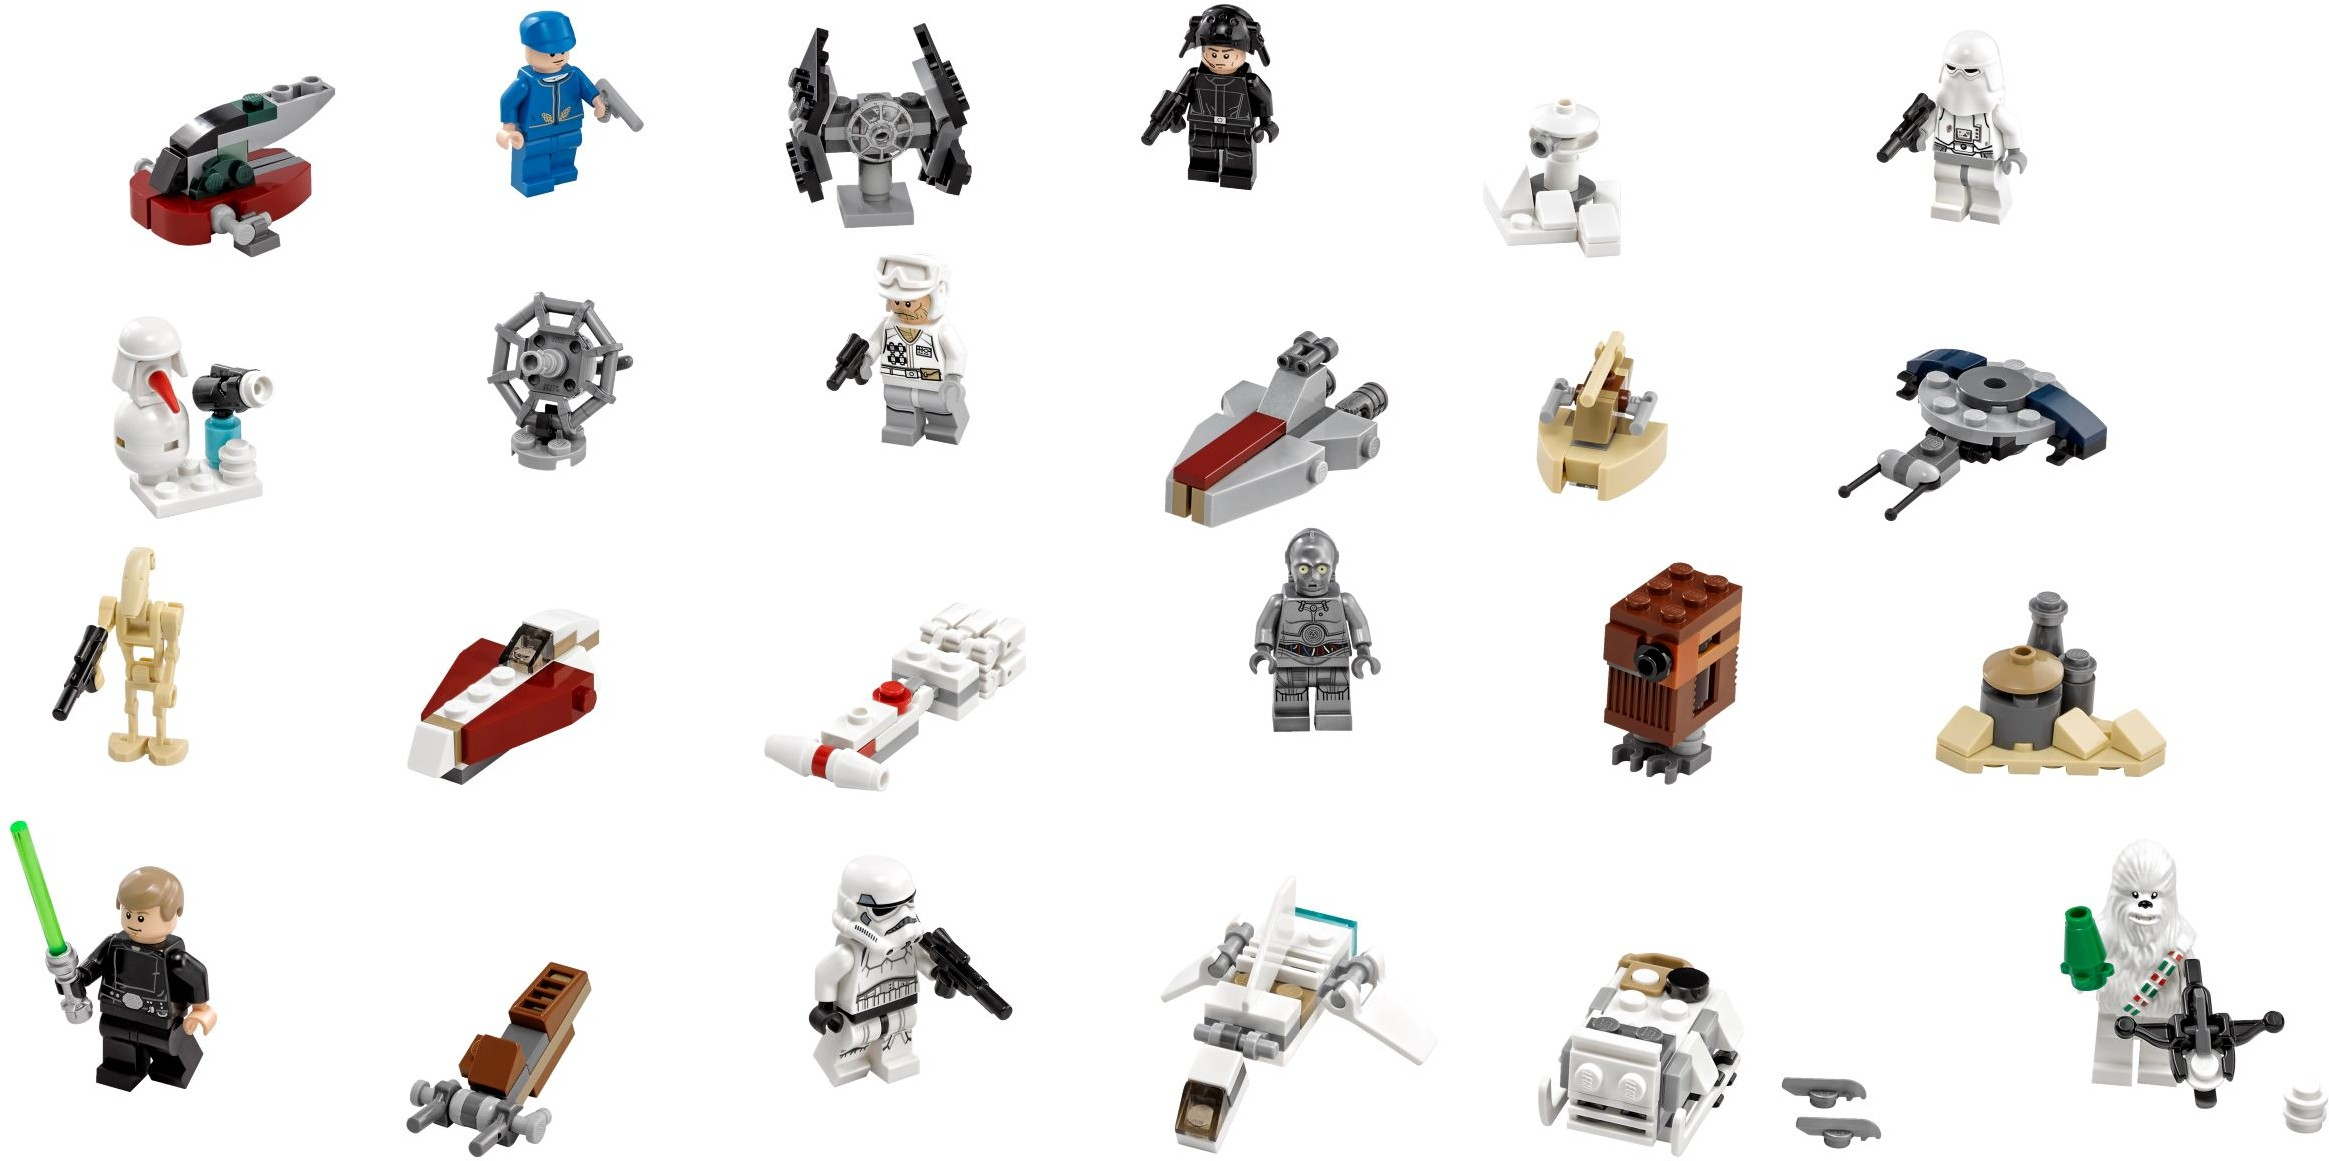 http://images.brickset.com/sets/large/75146-1.jpg?201608210825